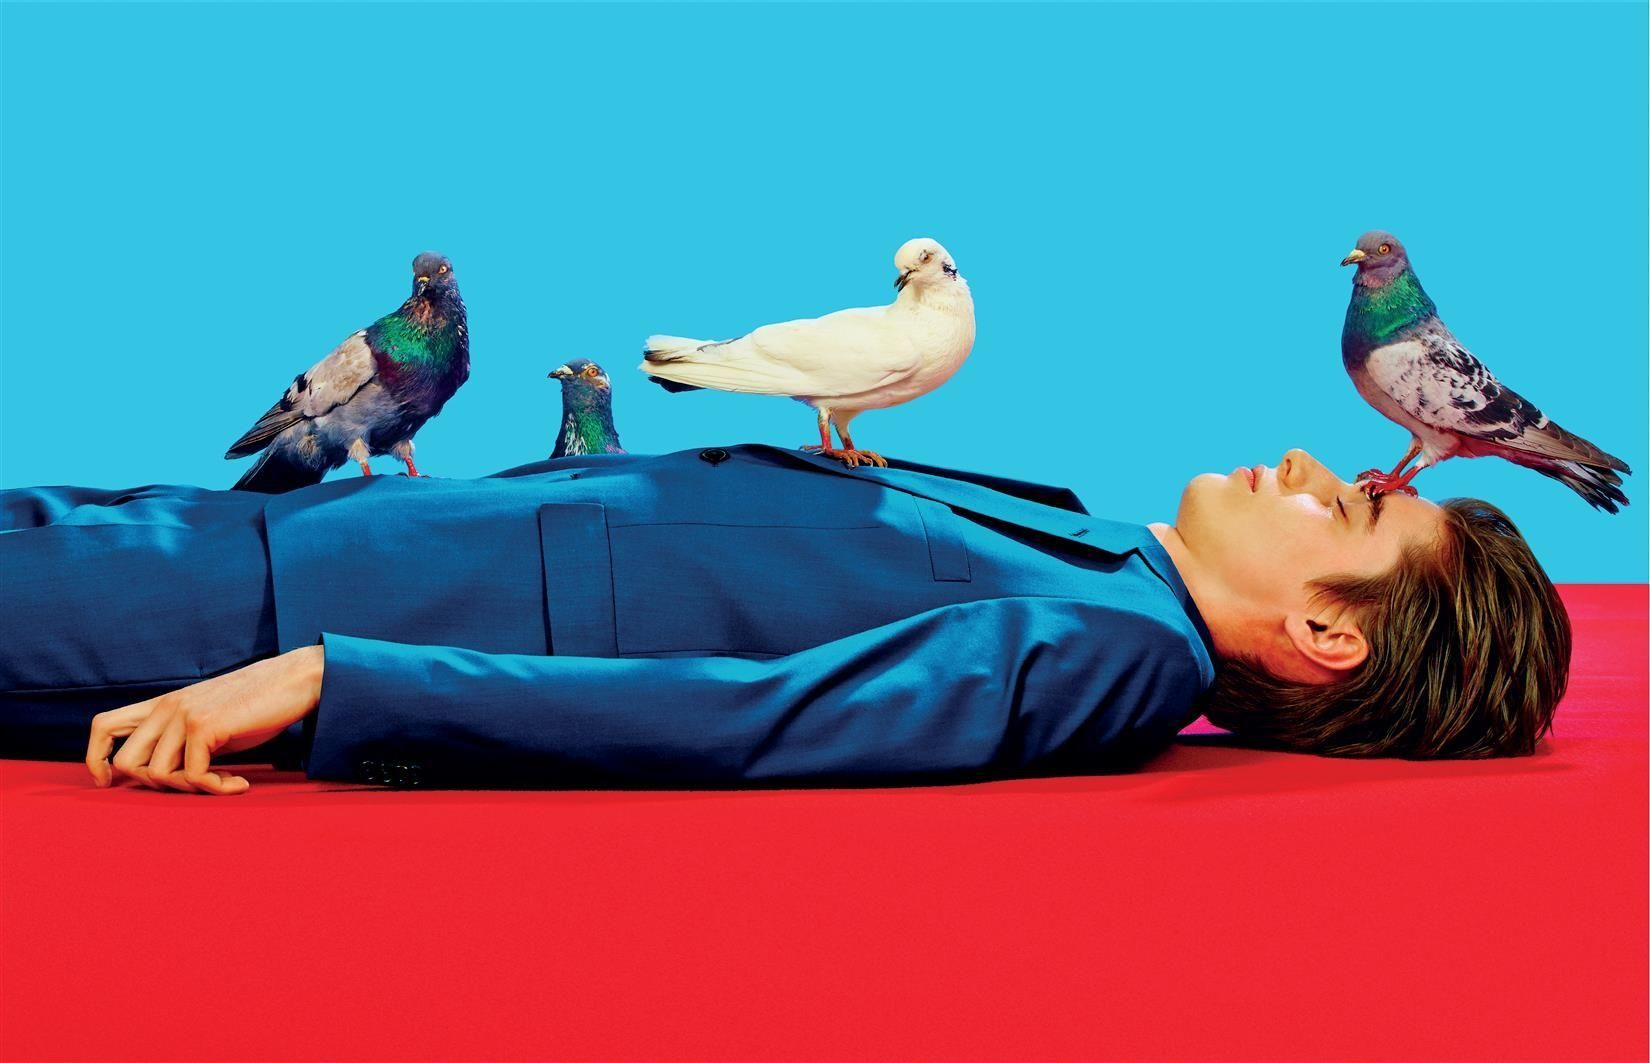 Artists   photographers   maurizio cattelan and pierpaolo ferrari   overview